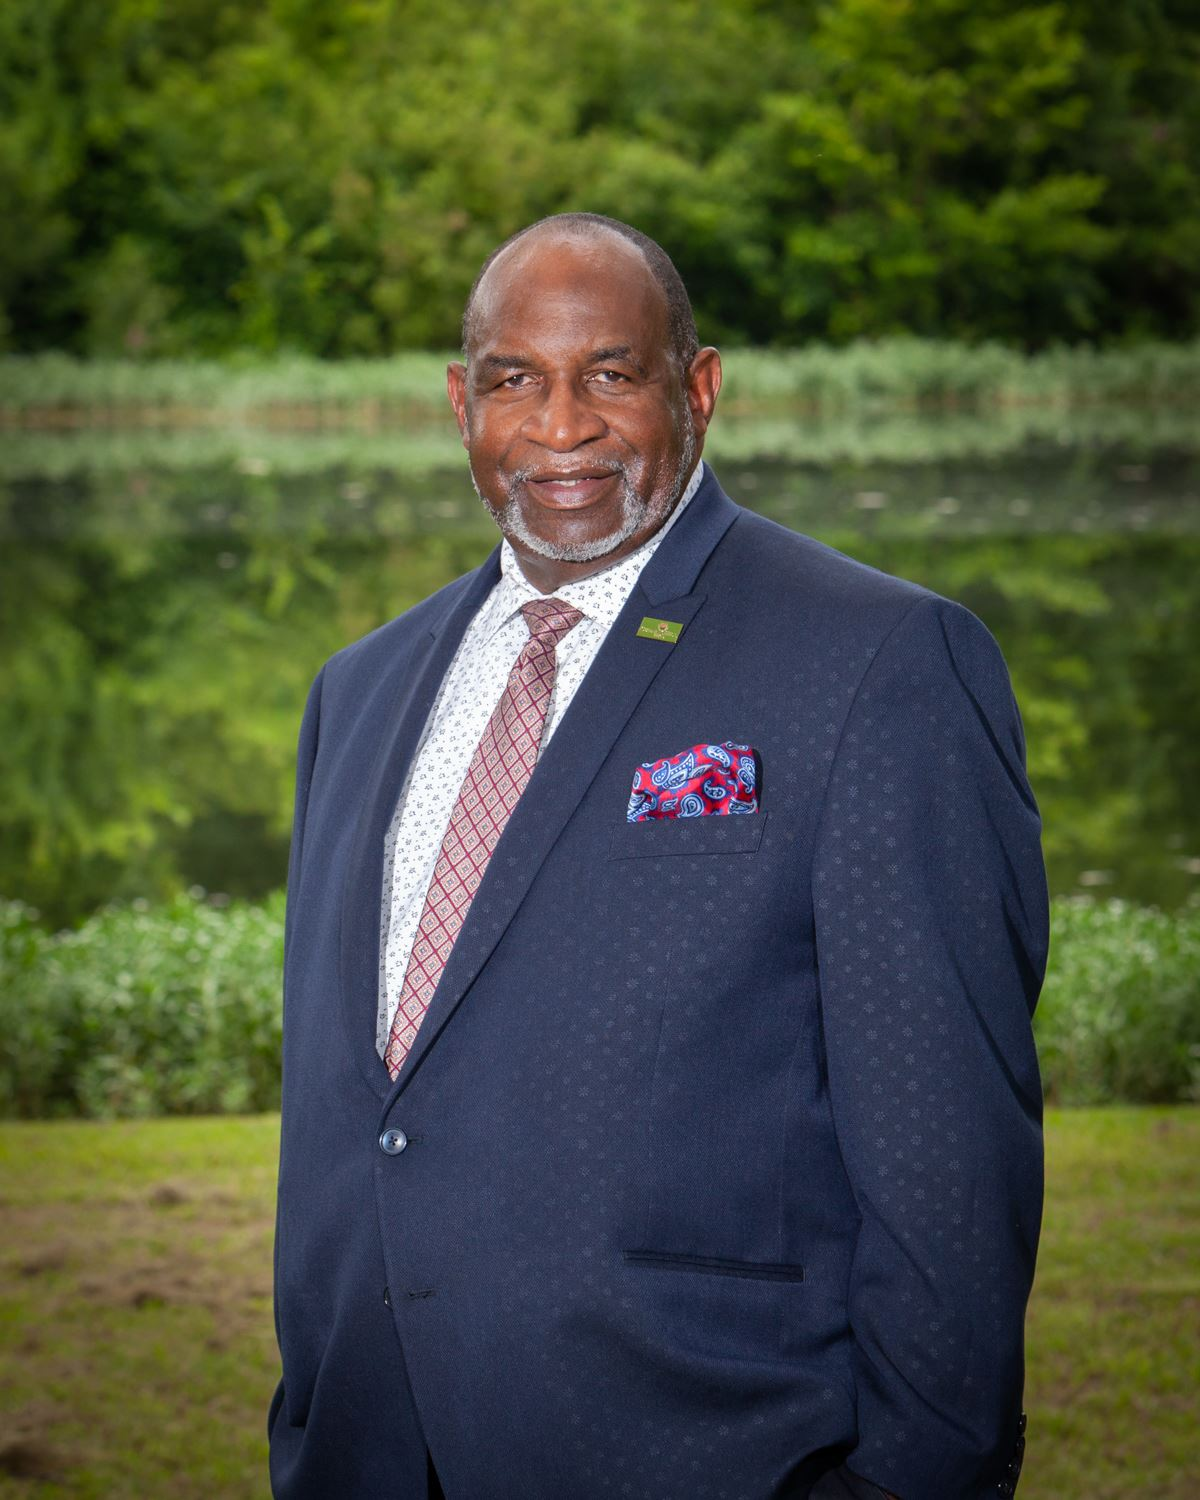 Council Member Cliff Shaw